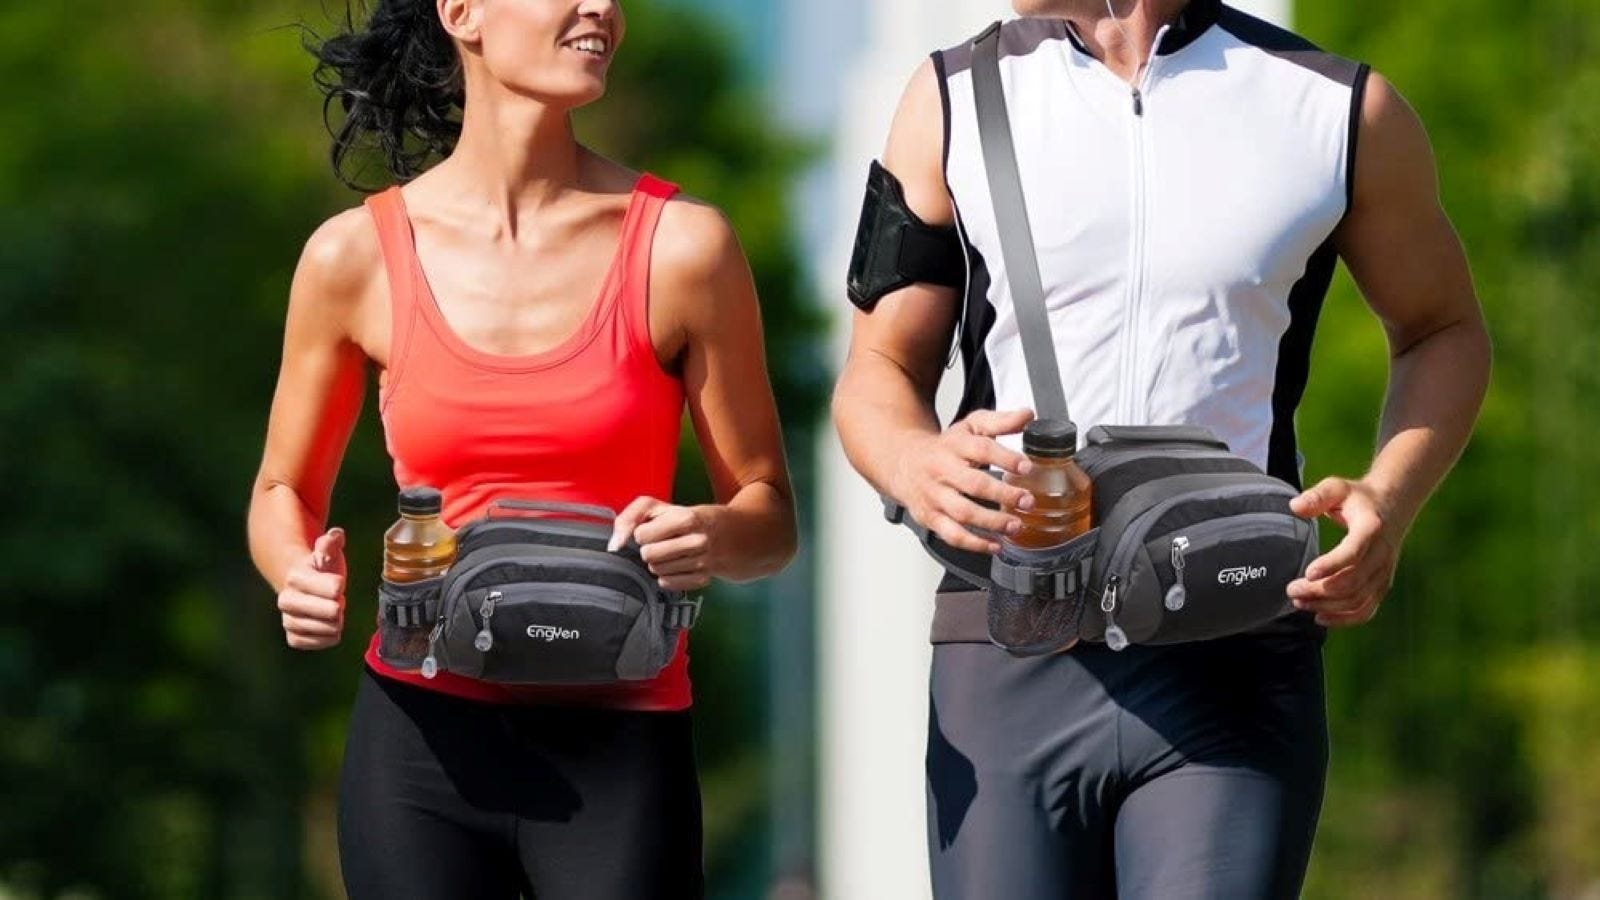 A woman wearing the ENGUYEN Fanny Pack at the waist running with a man wearing the pack as a crossbody bag.